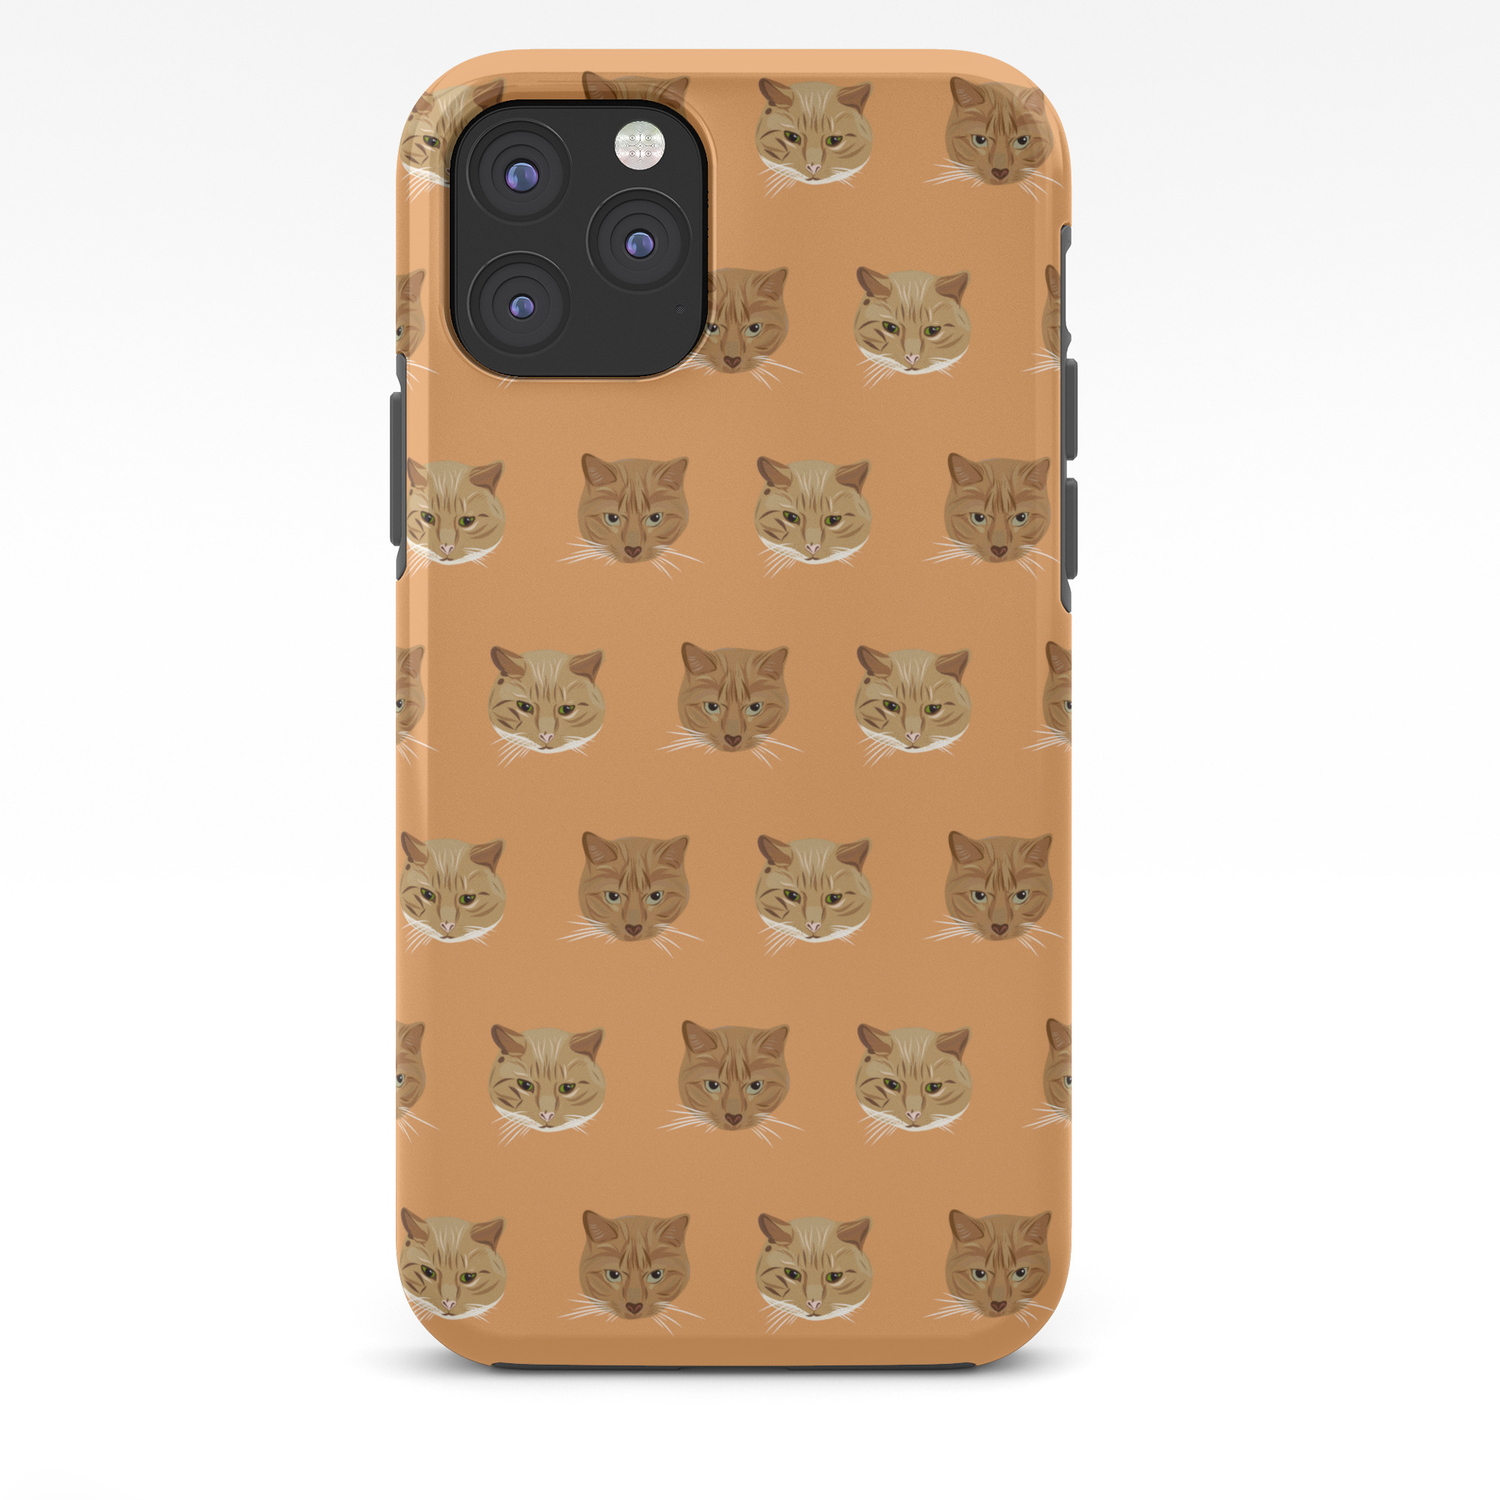 Kellie S Kitties Kitty Wallpaper Pattern For The Crazy Cat Lady In Your Life Iphone Case By Designbycheyney Society6